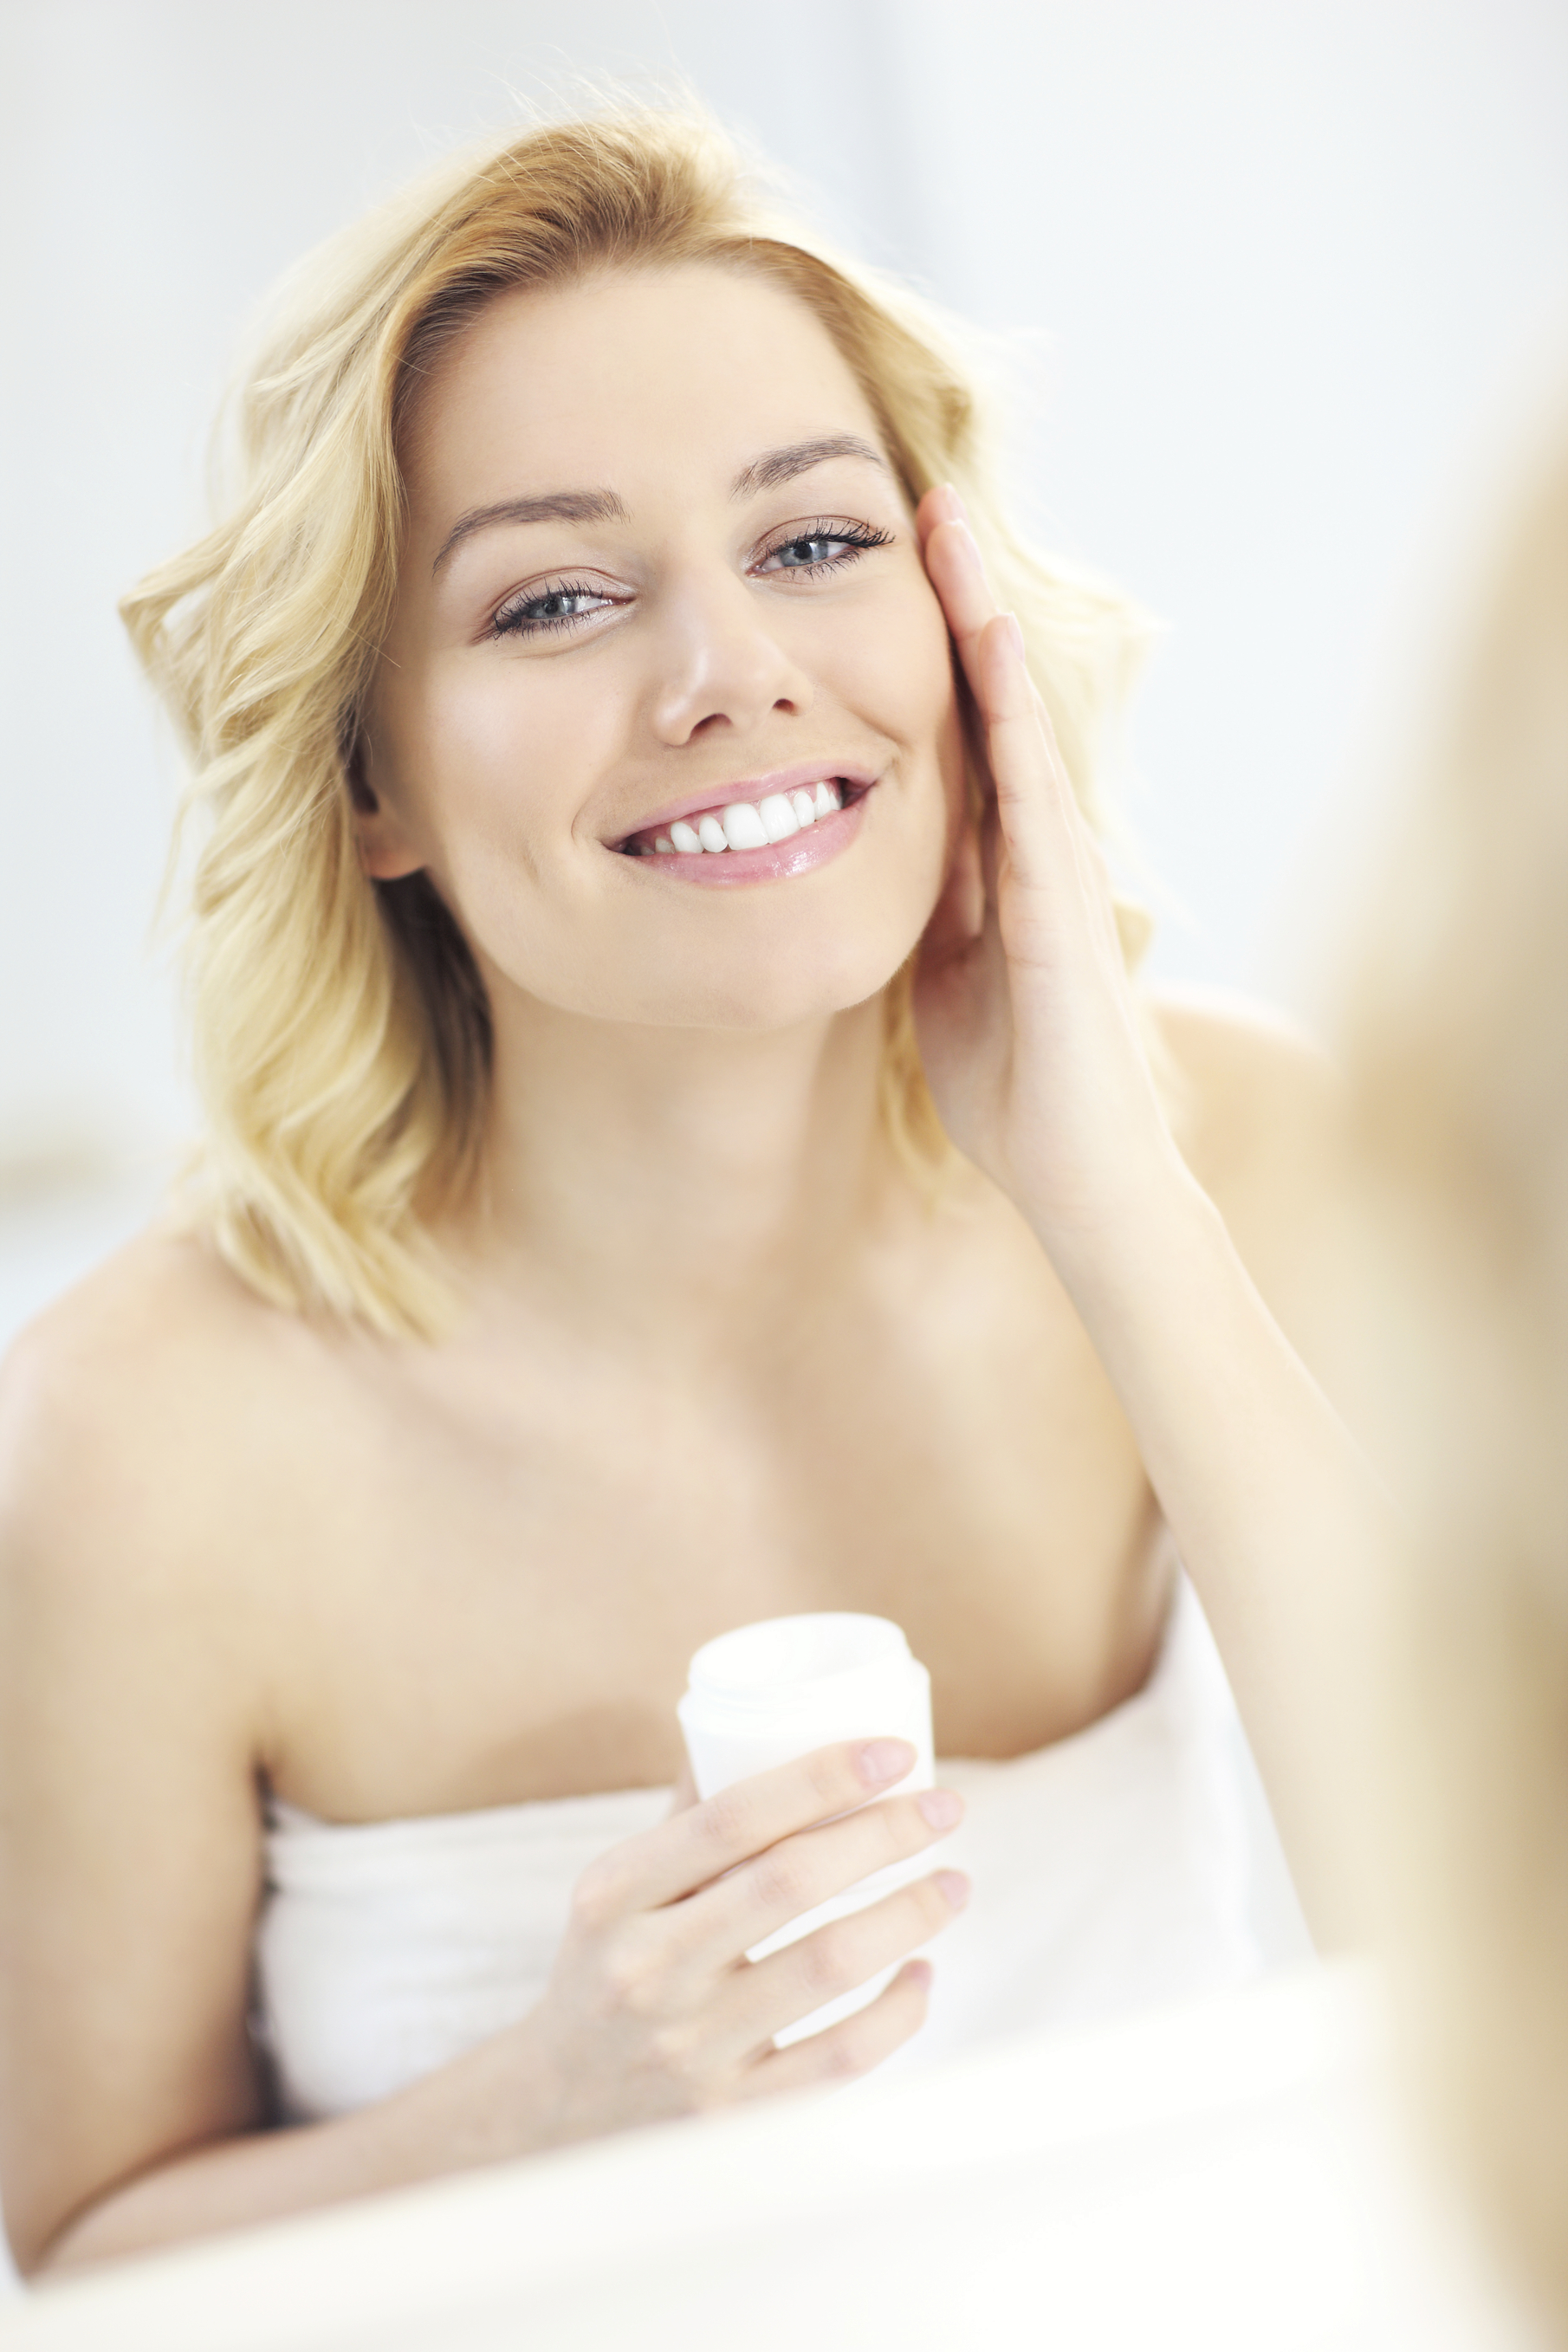 Denise recommends products that yield the exact results you're seeking.